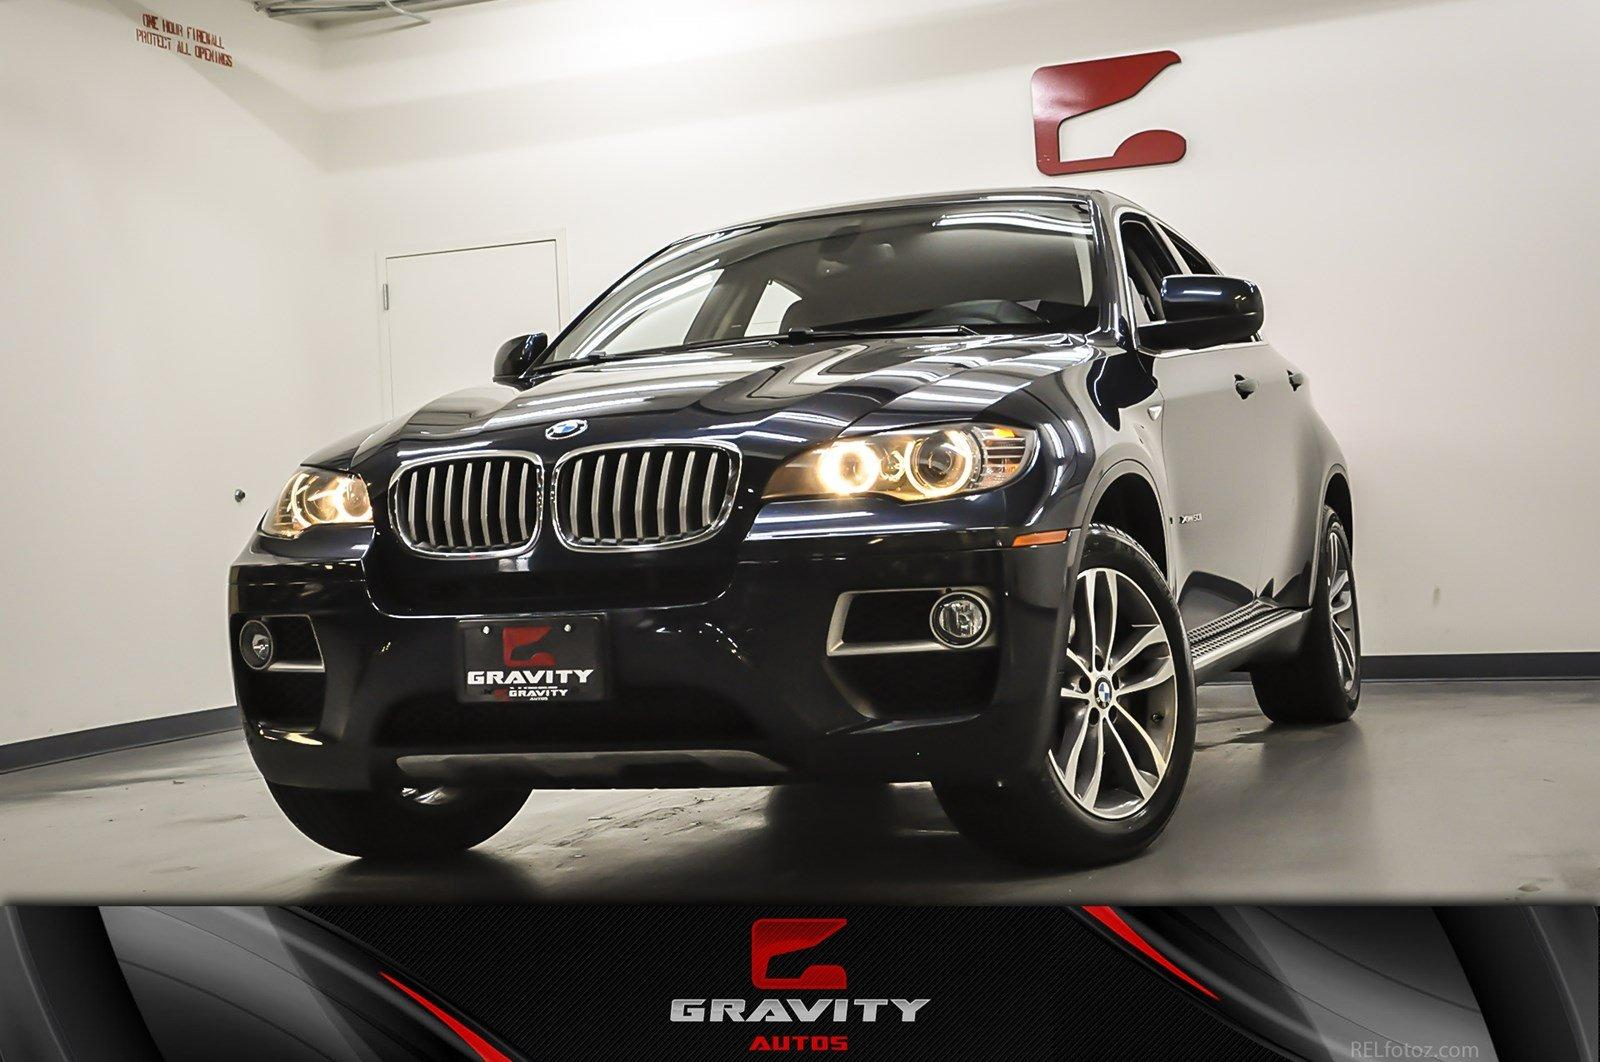 2013 bmw x6 xdrive50i stock 591415 for sale near marietta ga ga bmw dealer. Black Bedroom Furniture Sets. Home Design Ideas